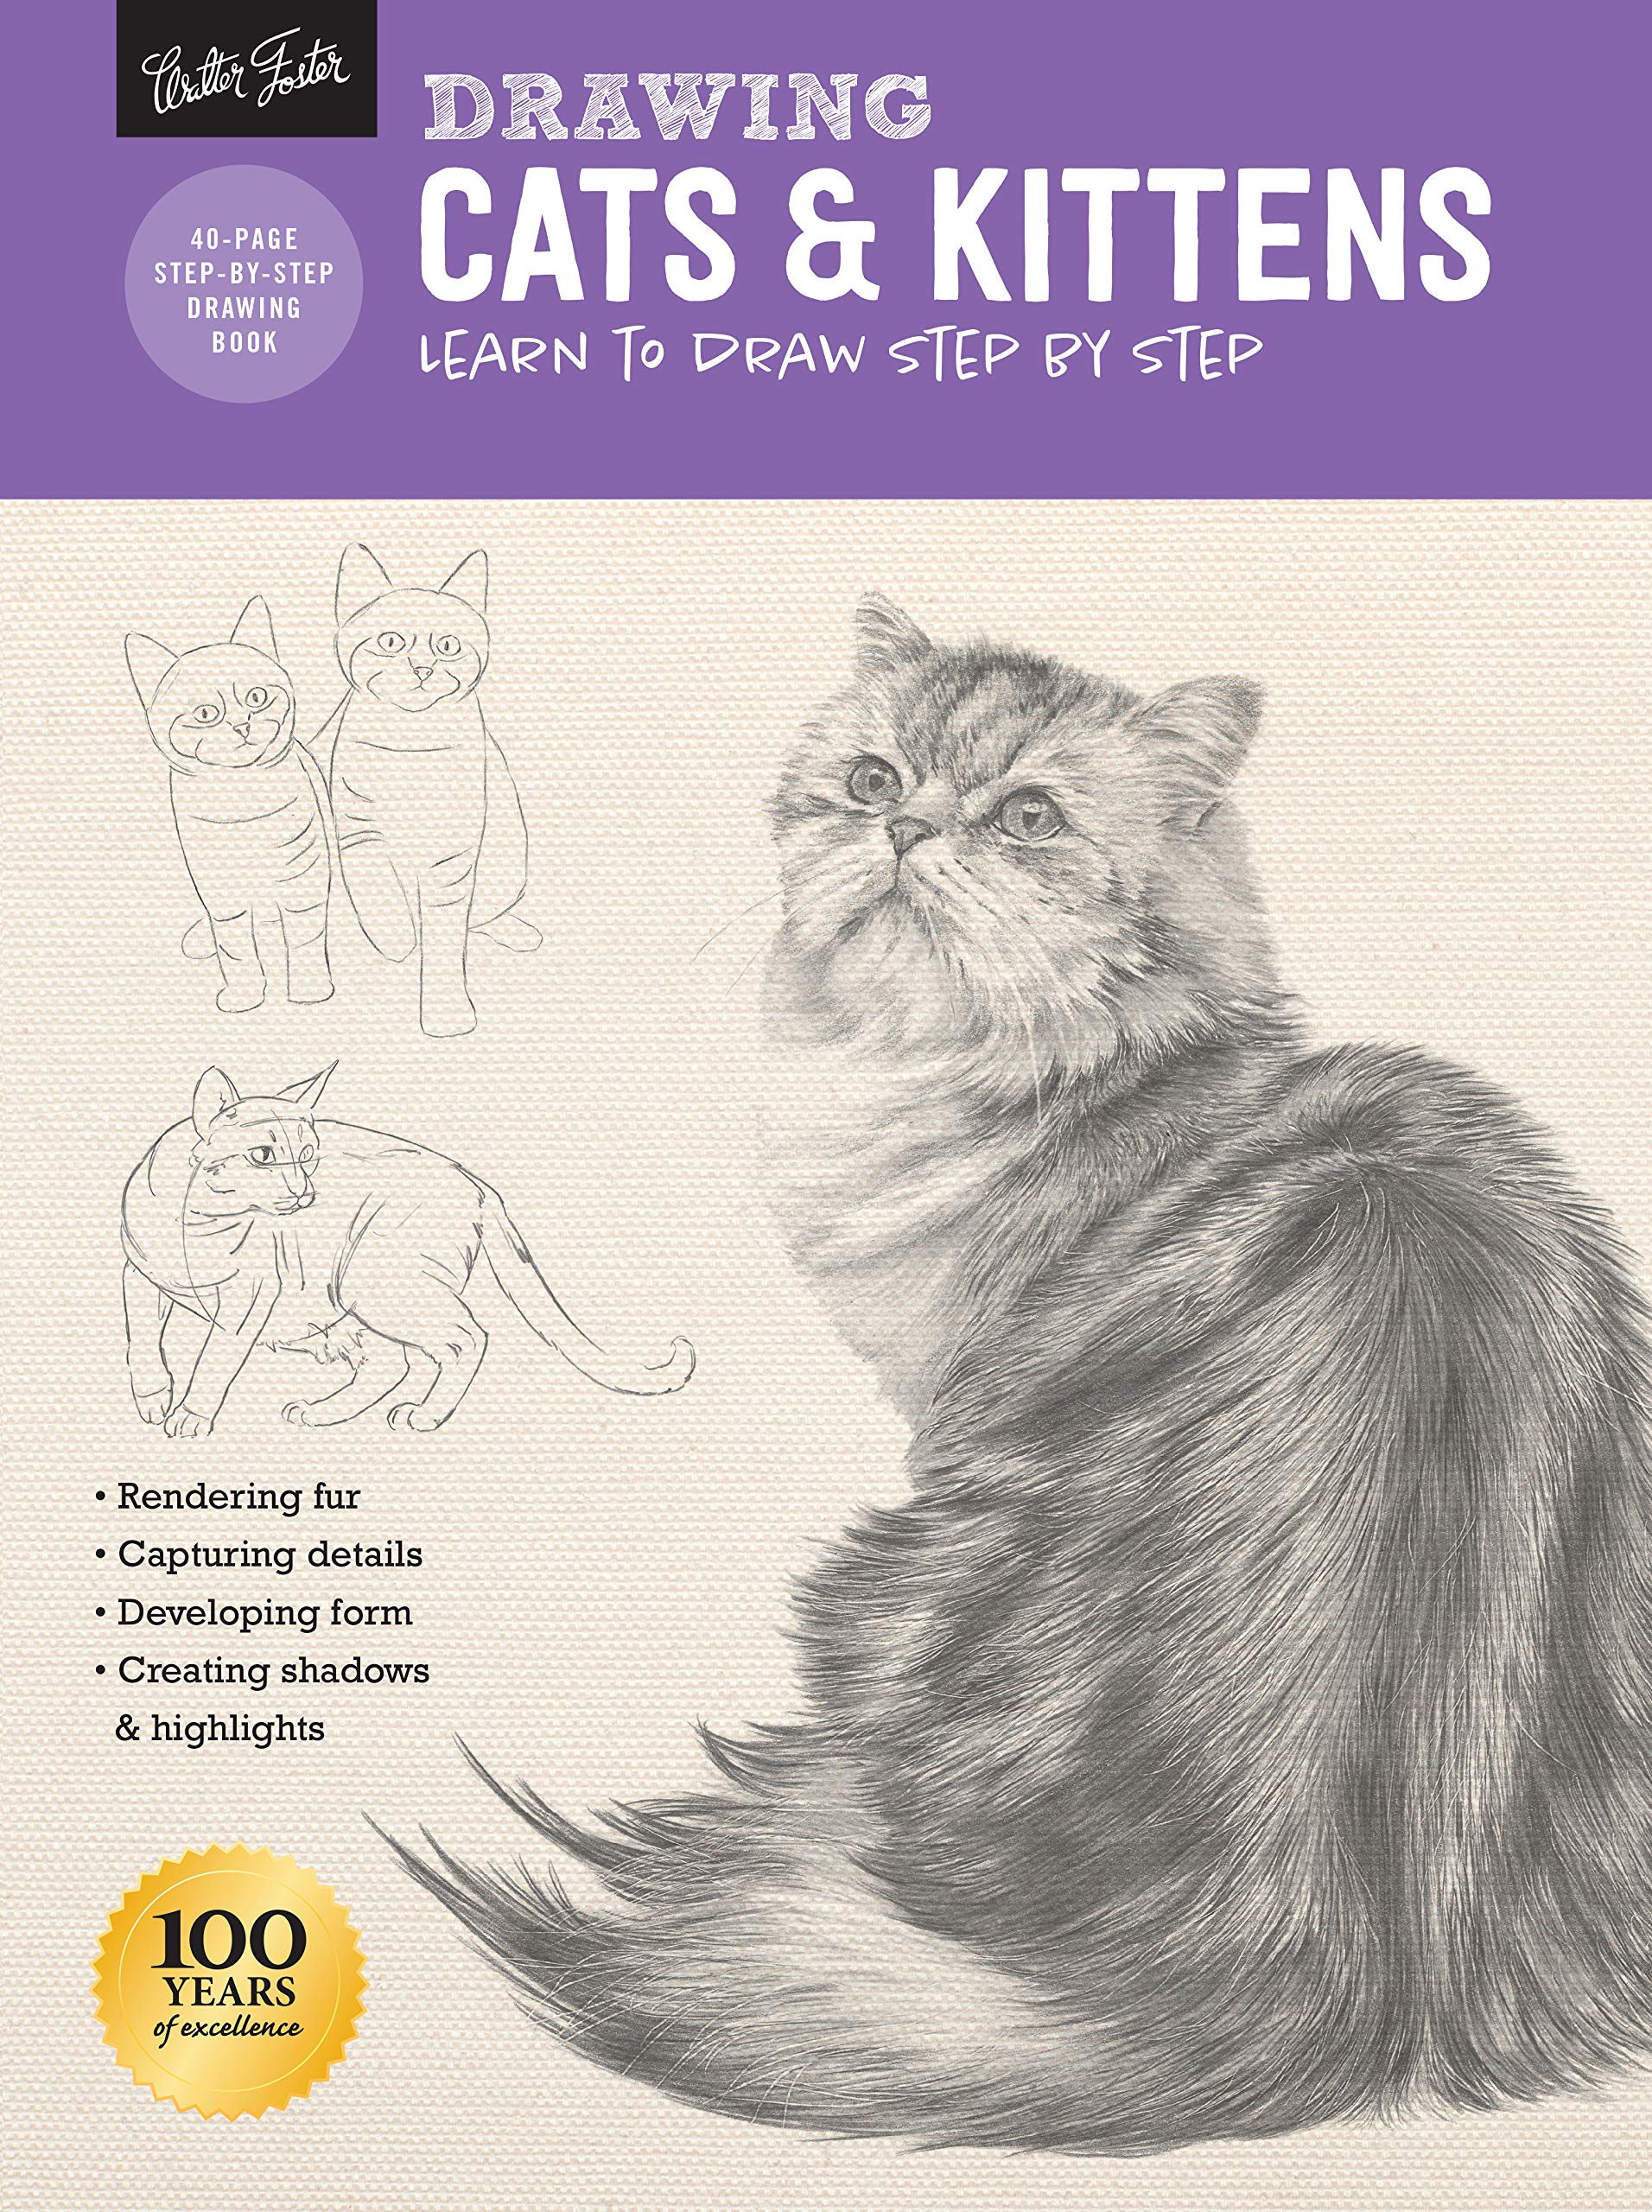 Drawing Cats Kittens Learn To Draw Step By Step How To Draw Paint Smith Cindy Stacey Nolon Tavonatti Mia 9781633225787 Books